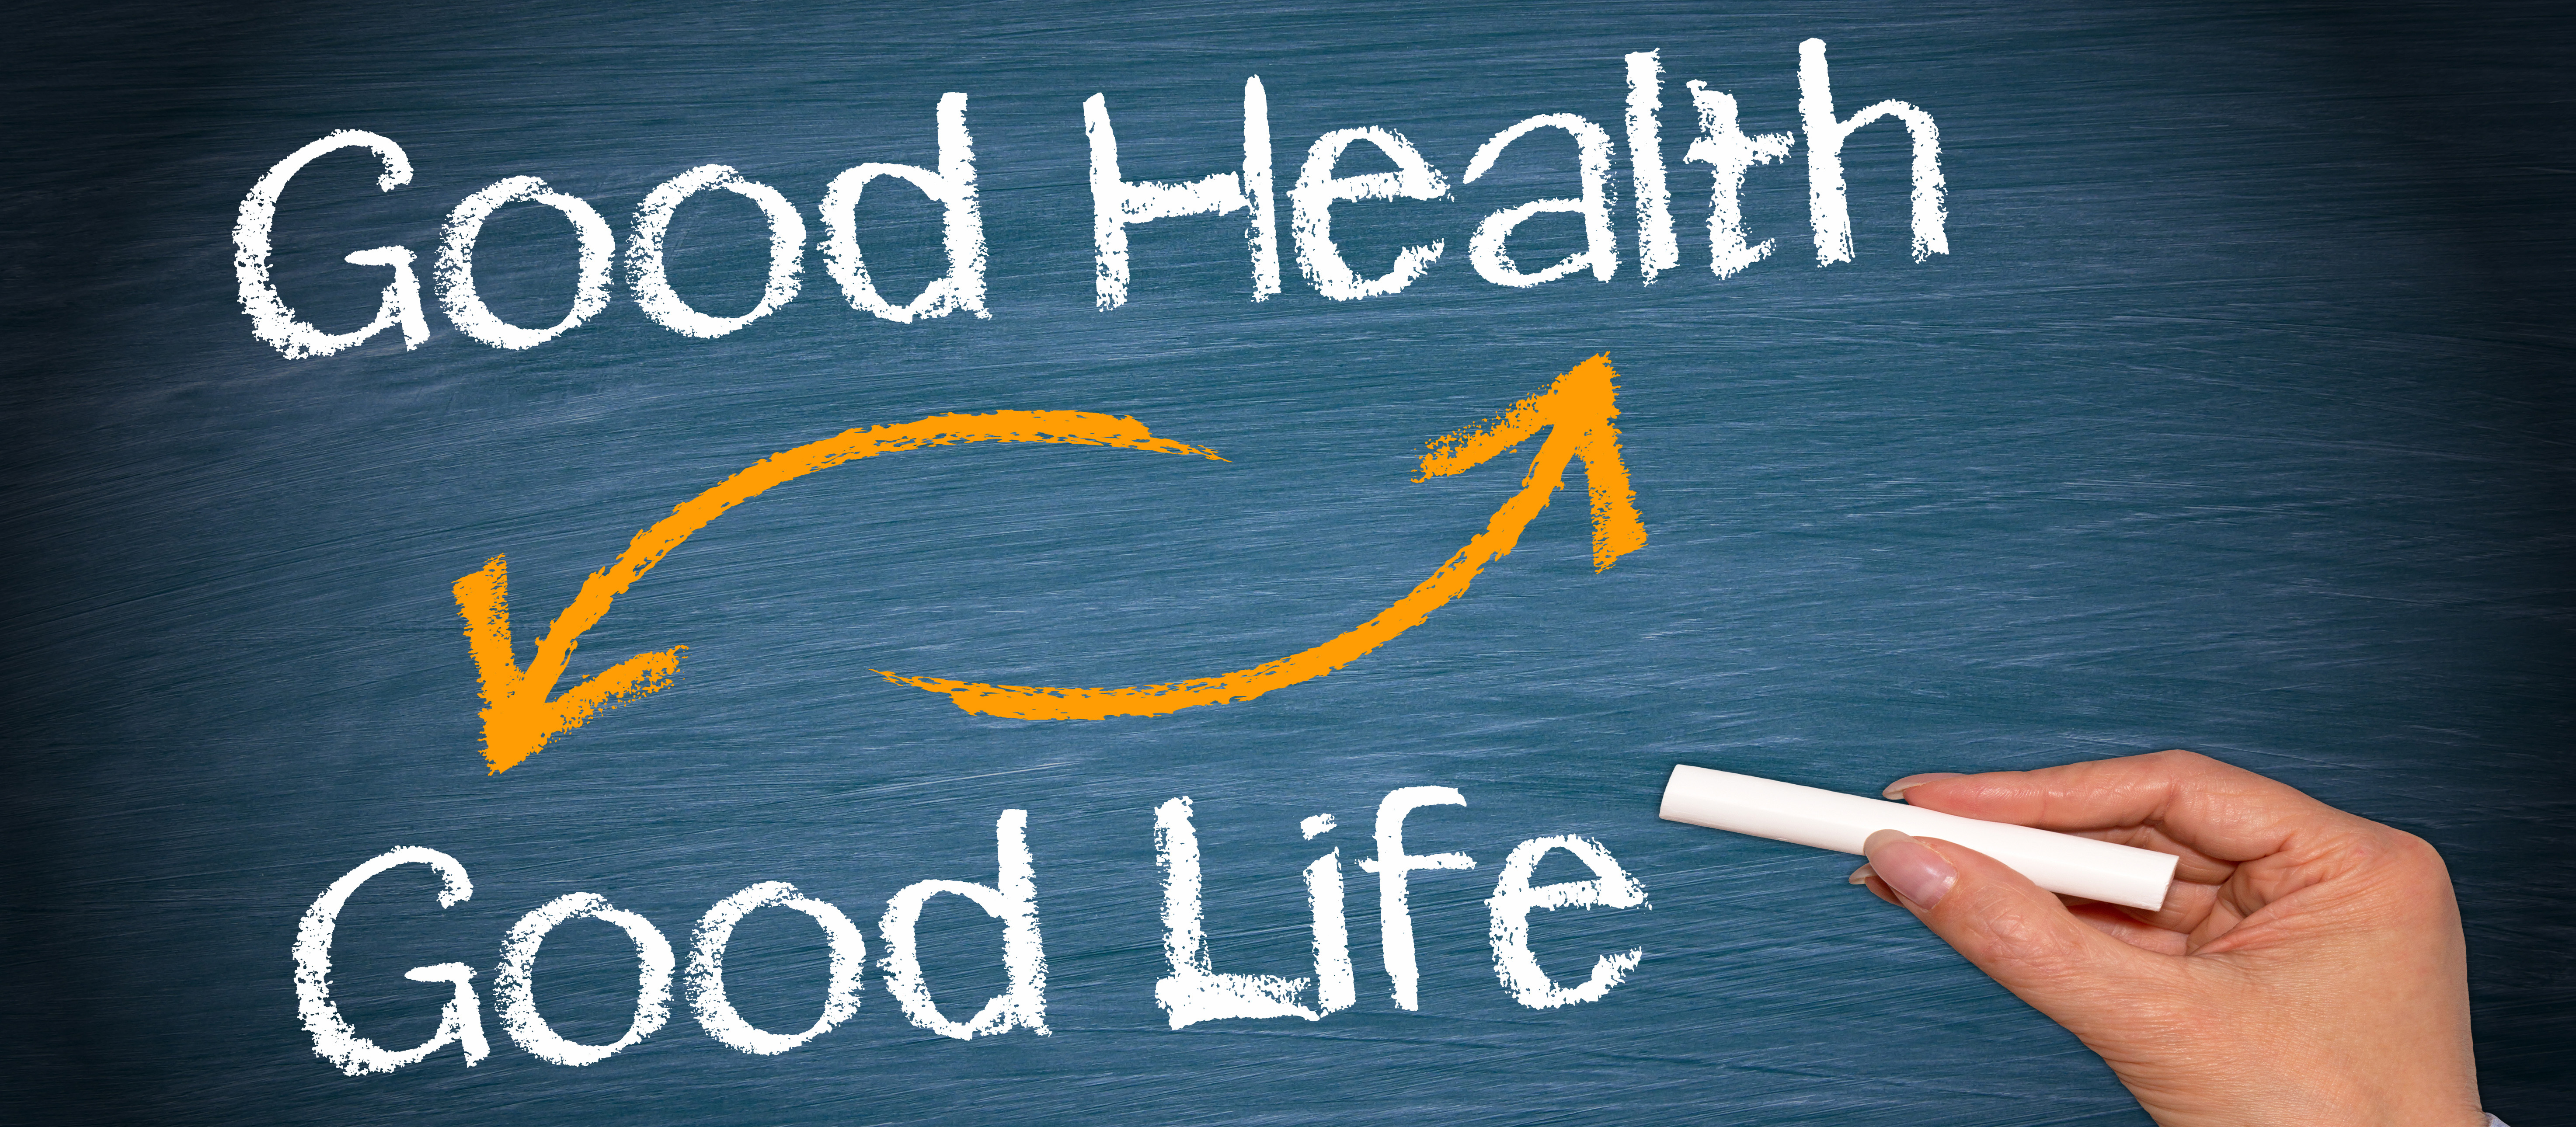 essay good heath Health is more important than wealth a rich person can afford various luxuries of life such as a consumption of healthy foods helps us to minimize any health related problems.